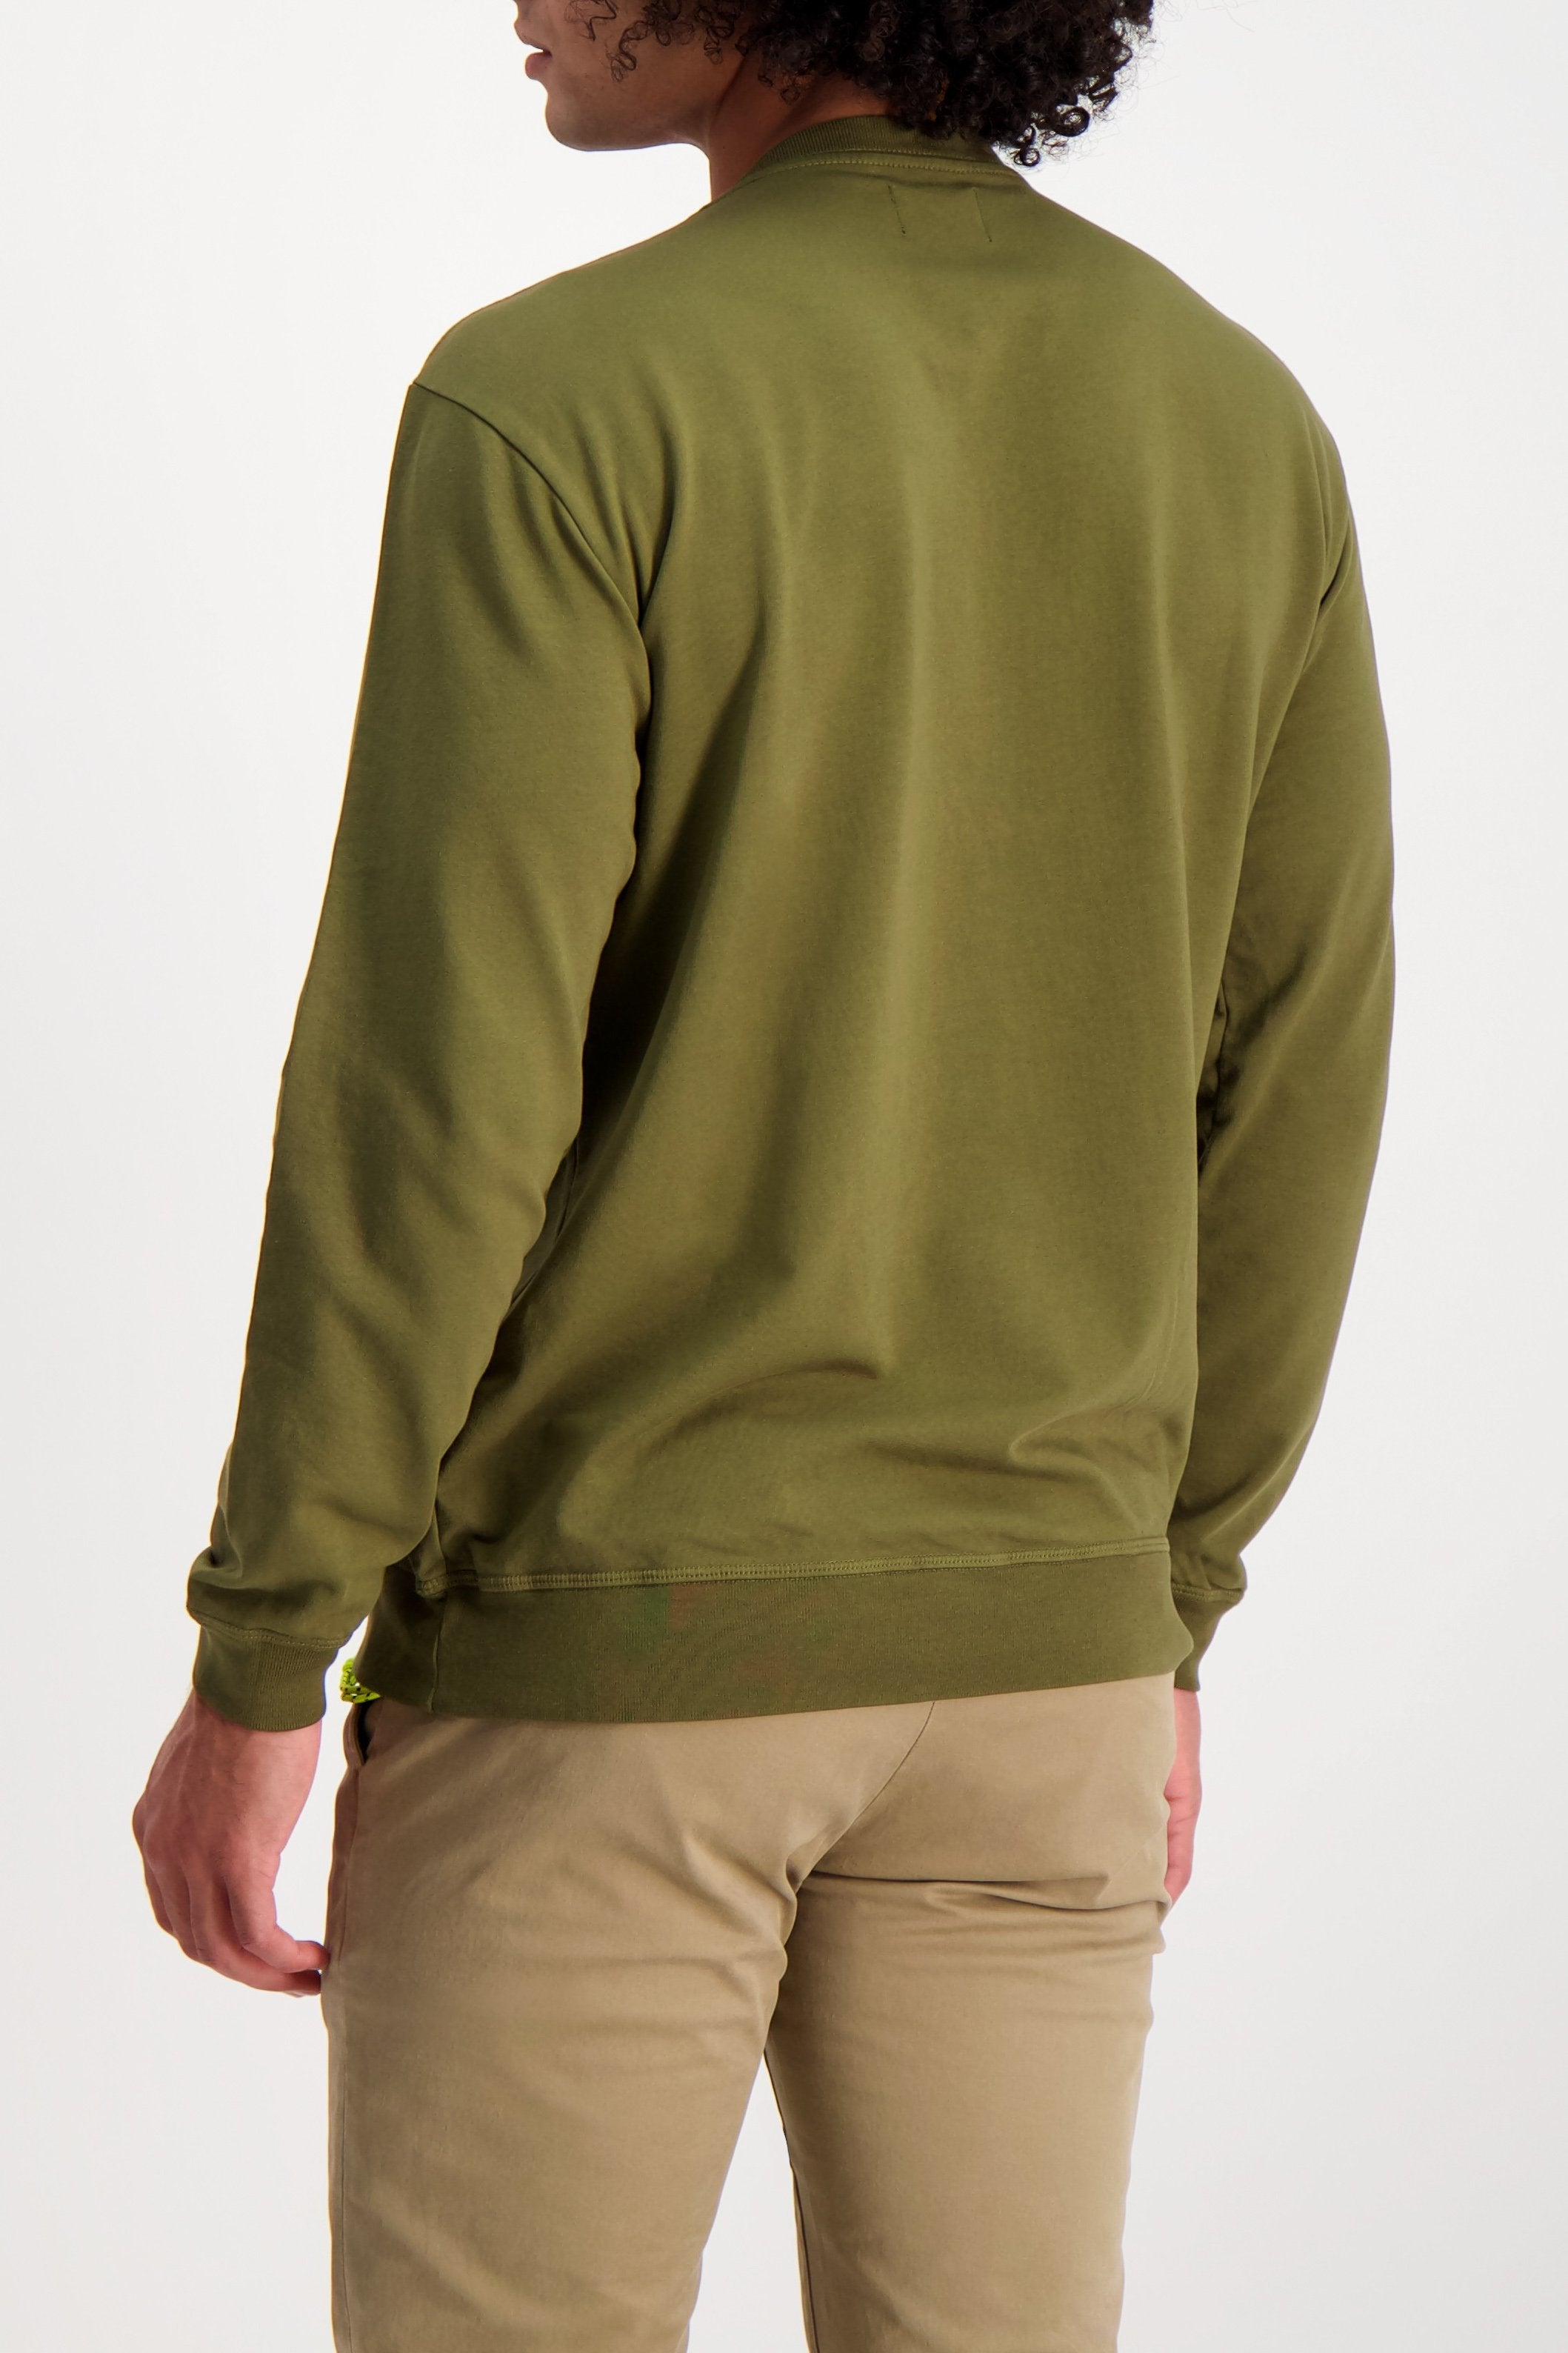 Back Crop Image Of Model Wearing Goodlife Micro Terry Crew Sweatshirt Olive